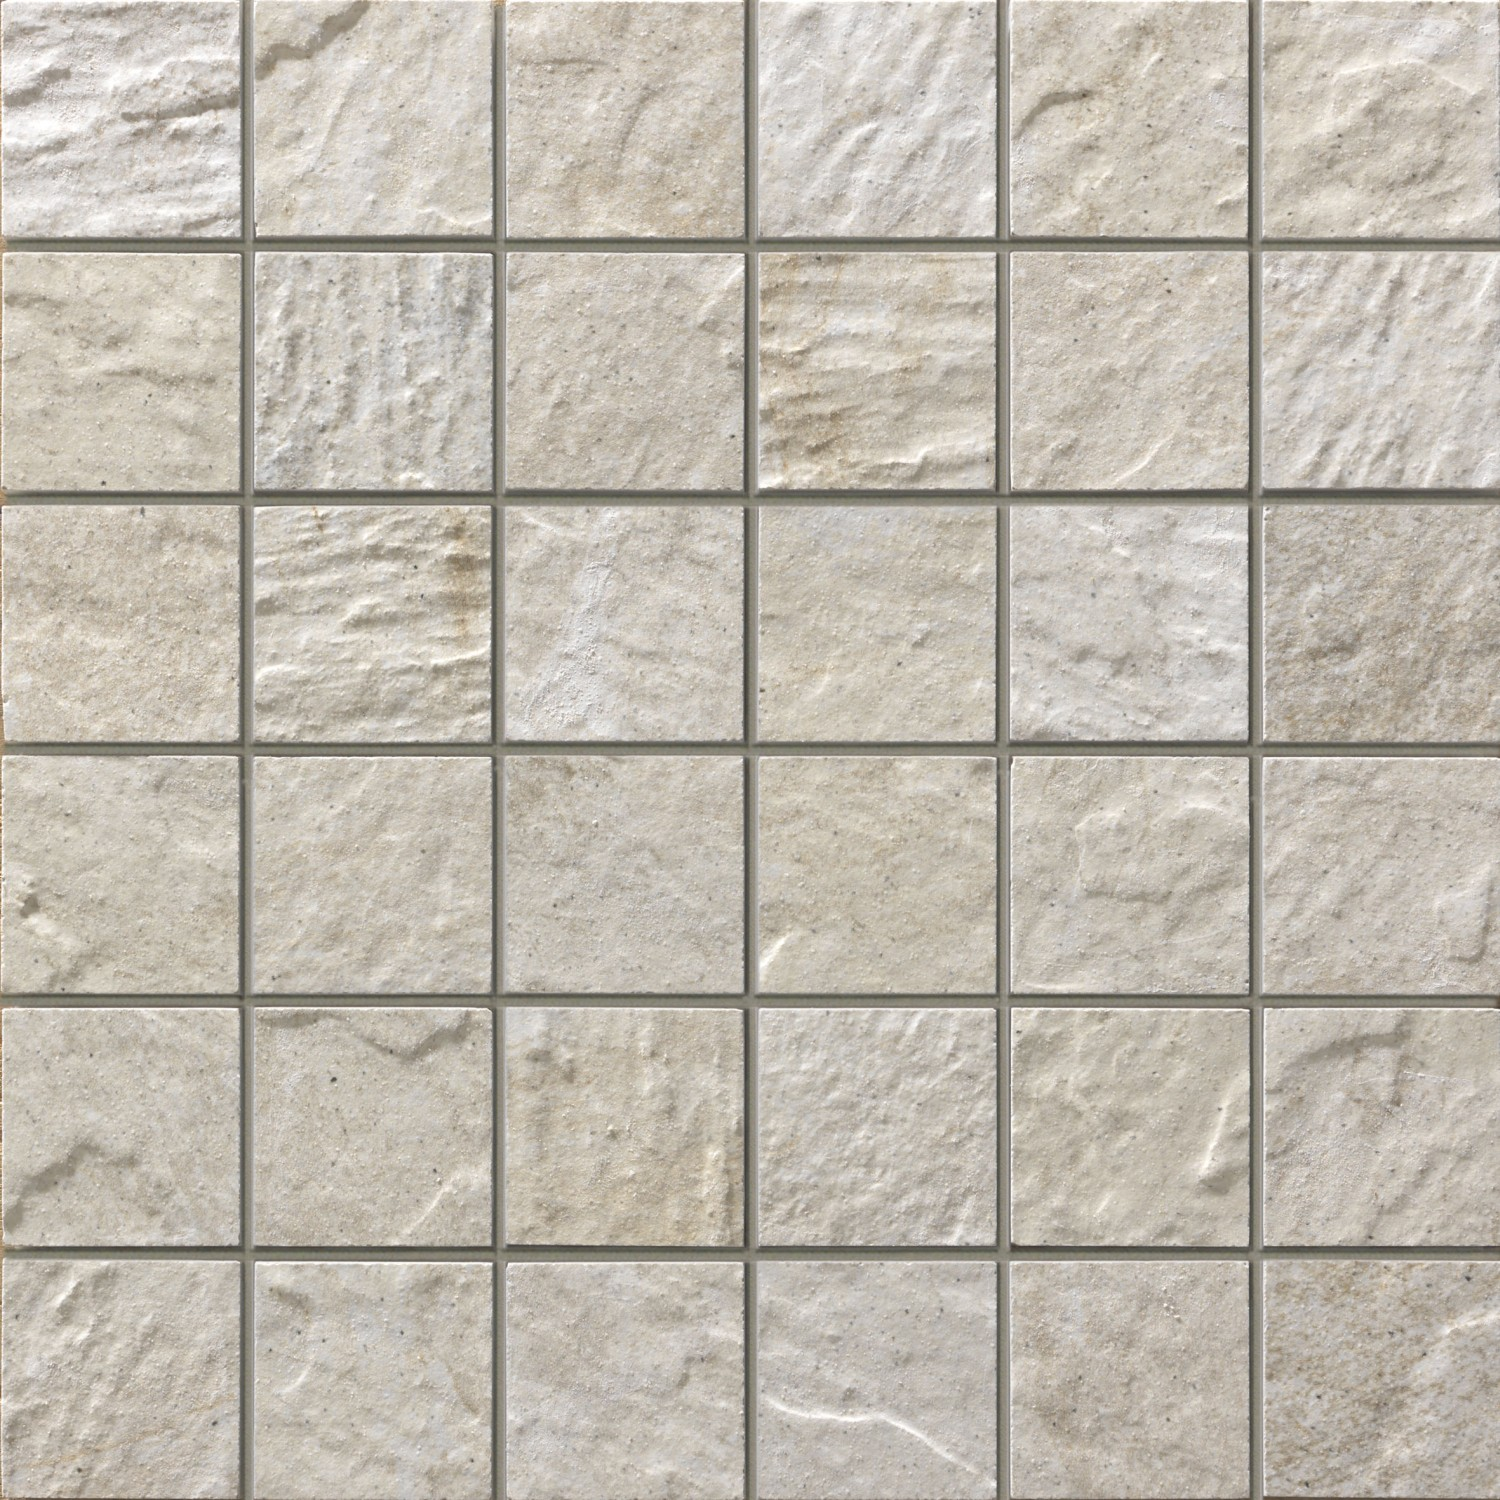 amazing bathroom white tile texture x 660 kb jpeg